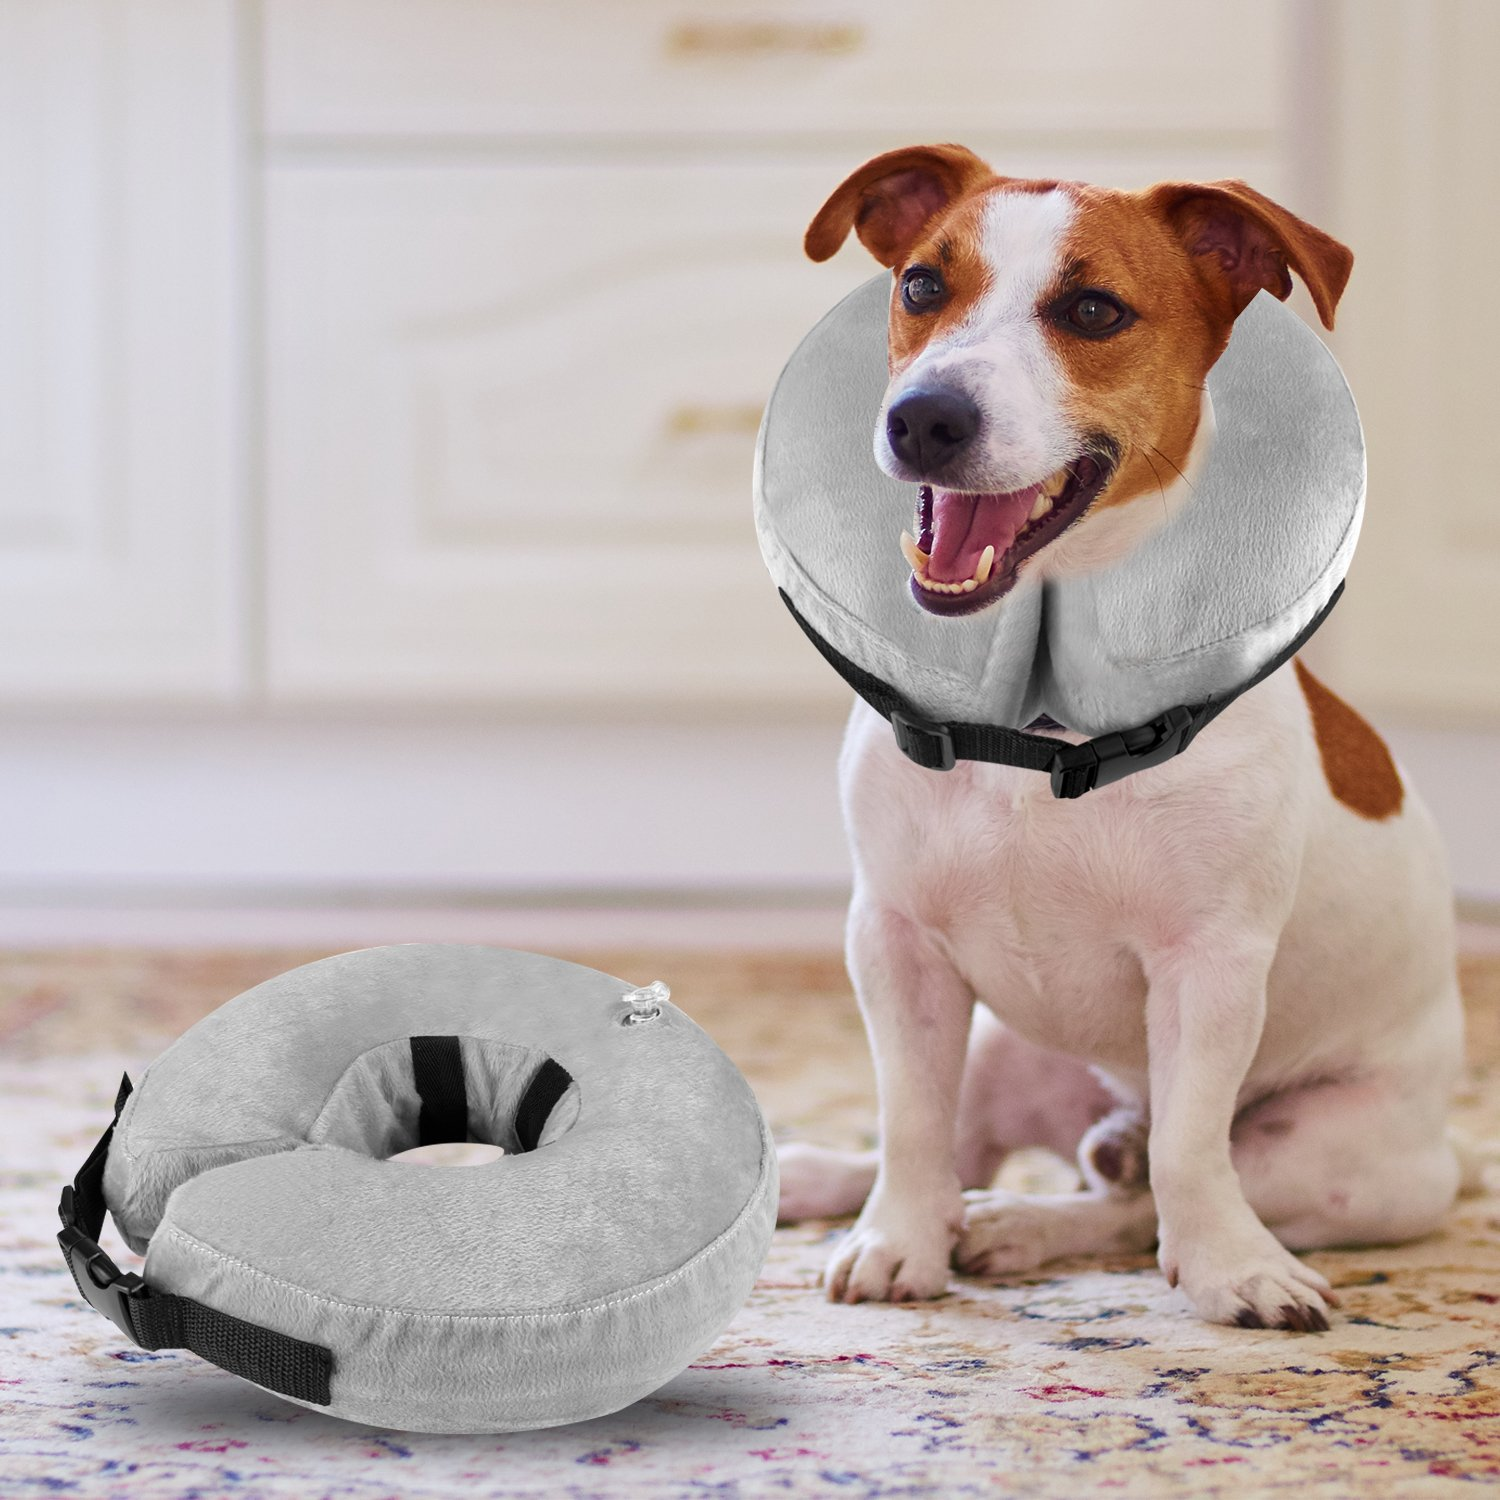 Airsspu Dog Cone Collar Soft - Soft Pet Recovery E-Collar Cone for Small Medium Large Dogs, Designed to Prevent Pets from Touching Stitches (Medium)